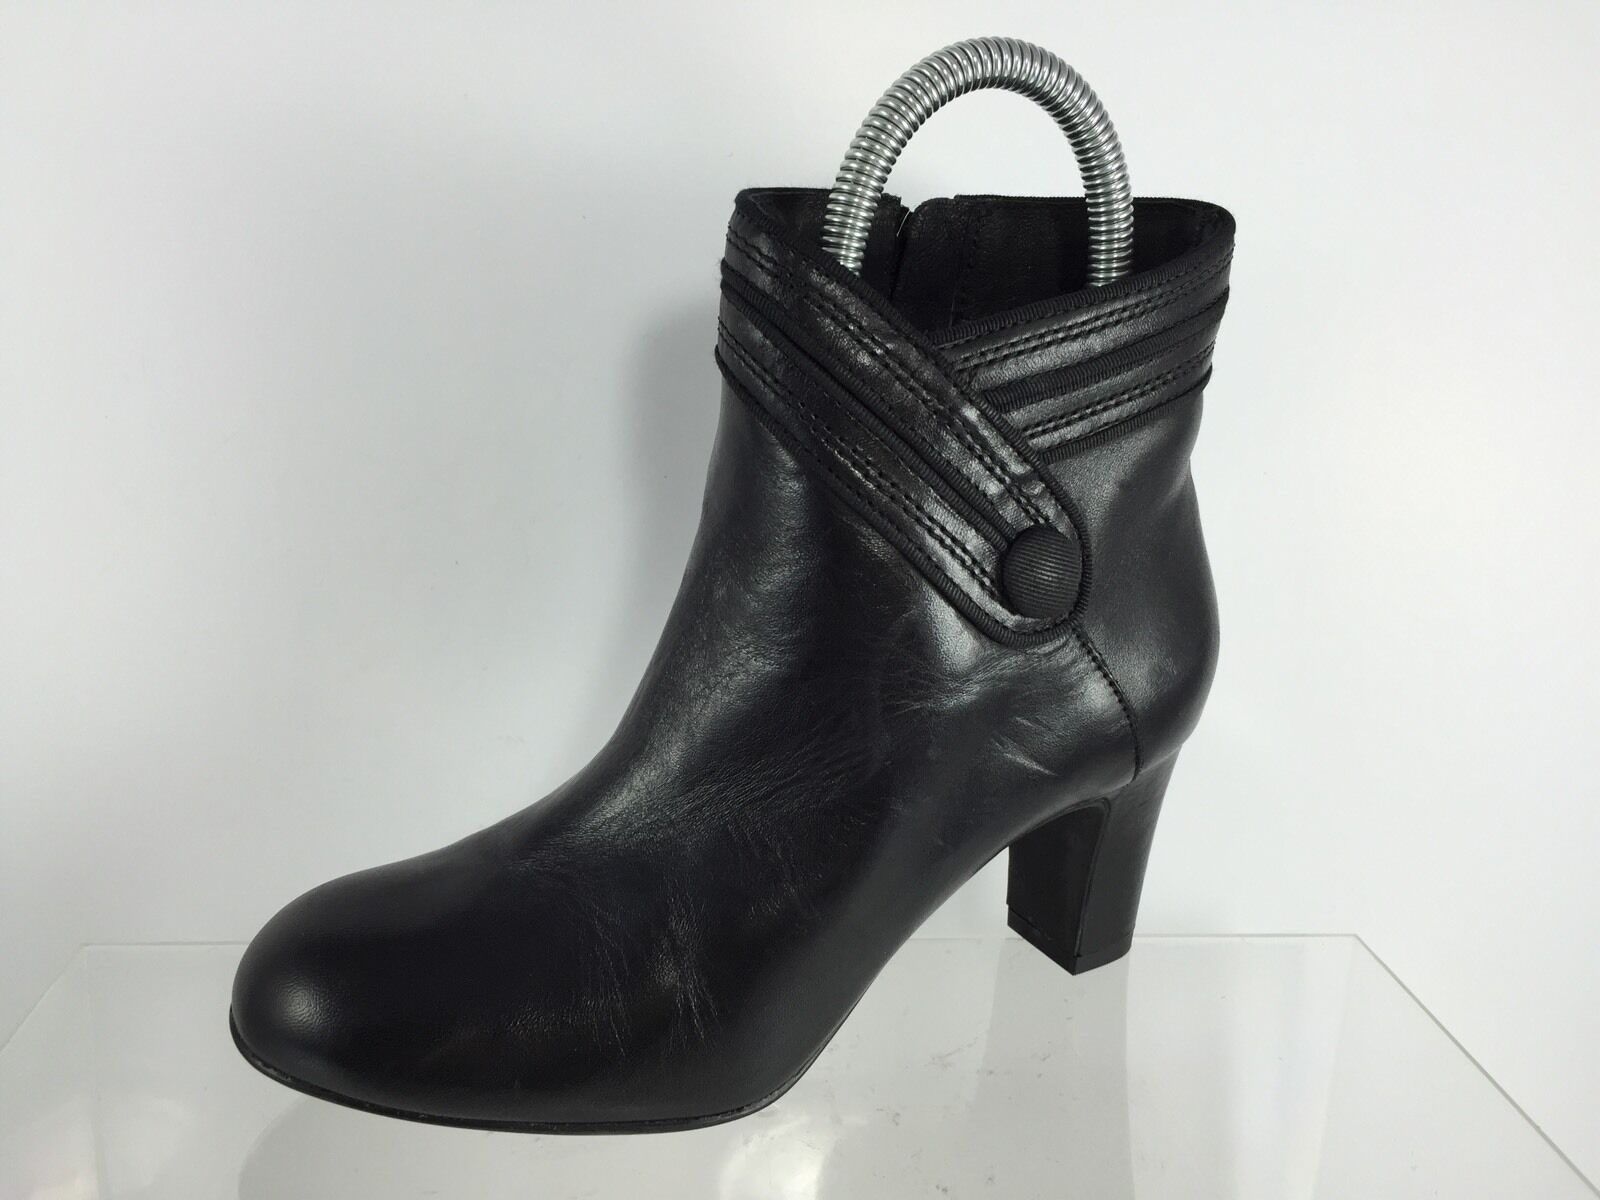 Clarks Clarks Clarks Womens Black Leather Ankle Boots 5.5 M 6bd41e